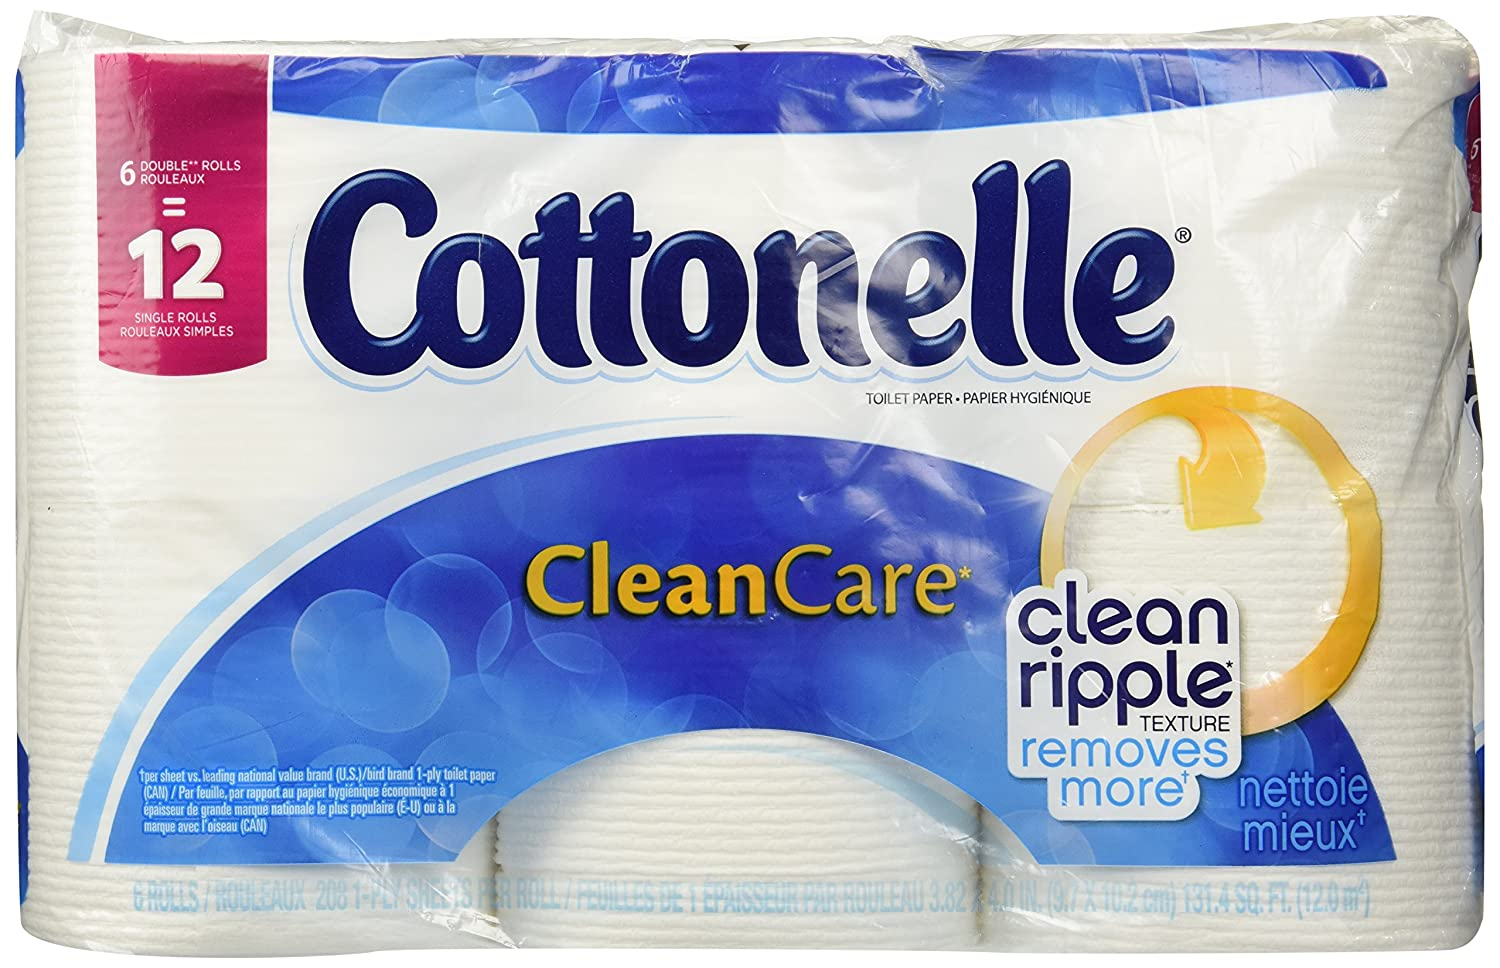 Amazon.com: Cottonelle Clean Care Toilet Paper, Double Roll (6 Rolls): Health & Personal Care